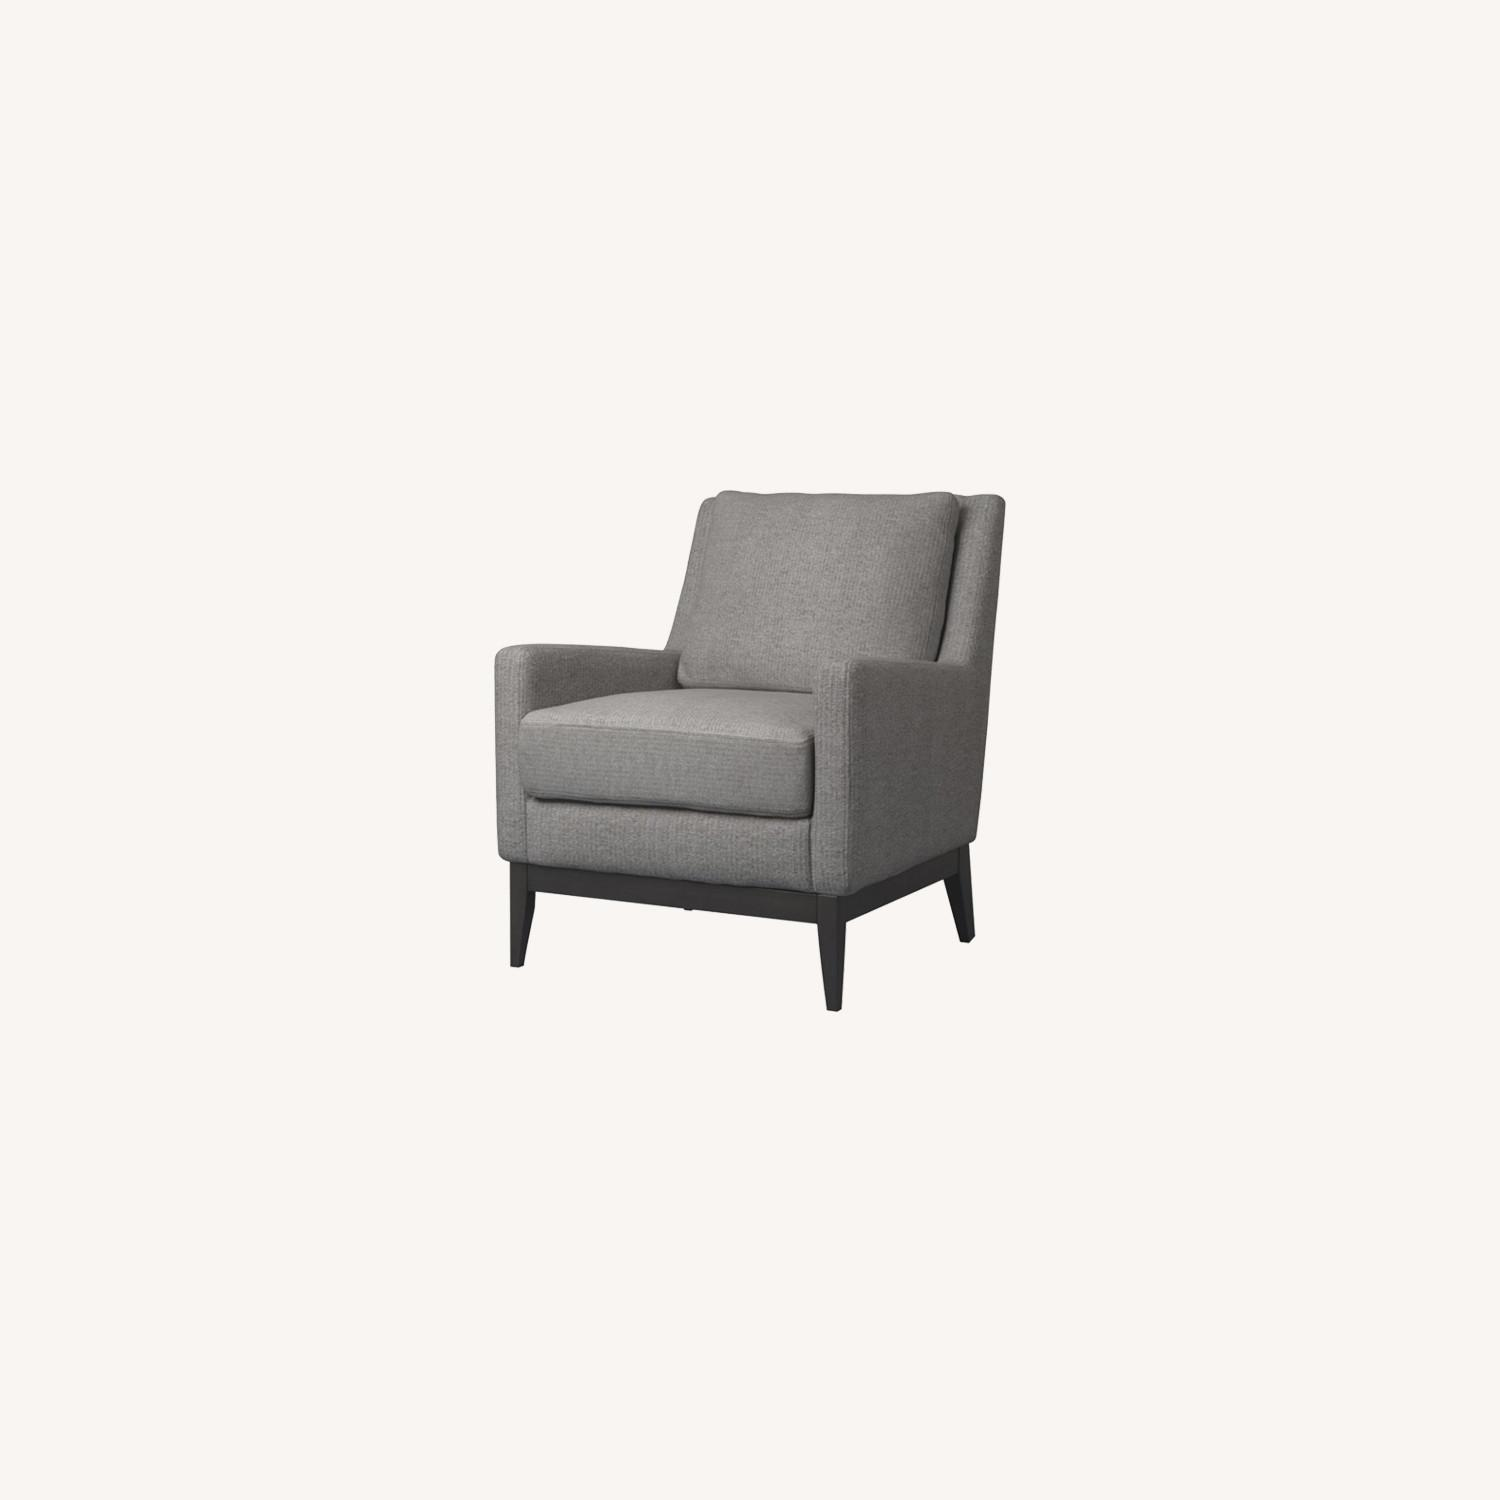 Accent Chair In Linen-Like Warm Grey Fabric Finish - image-3